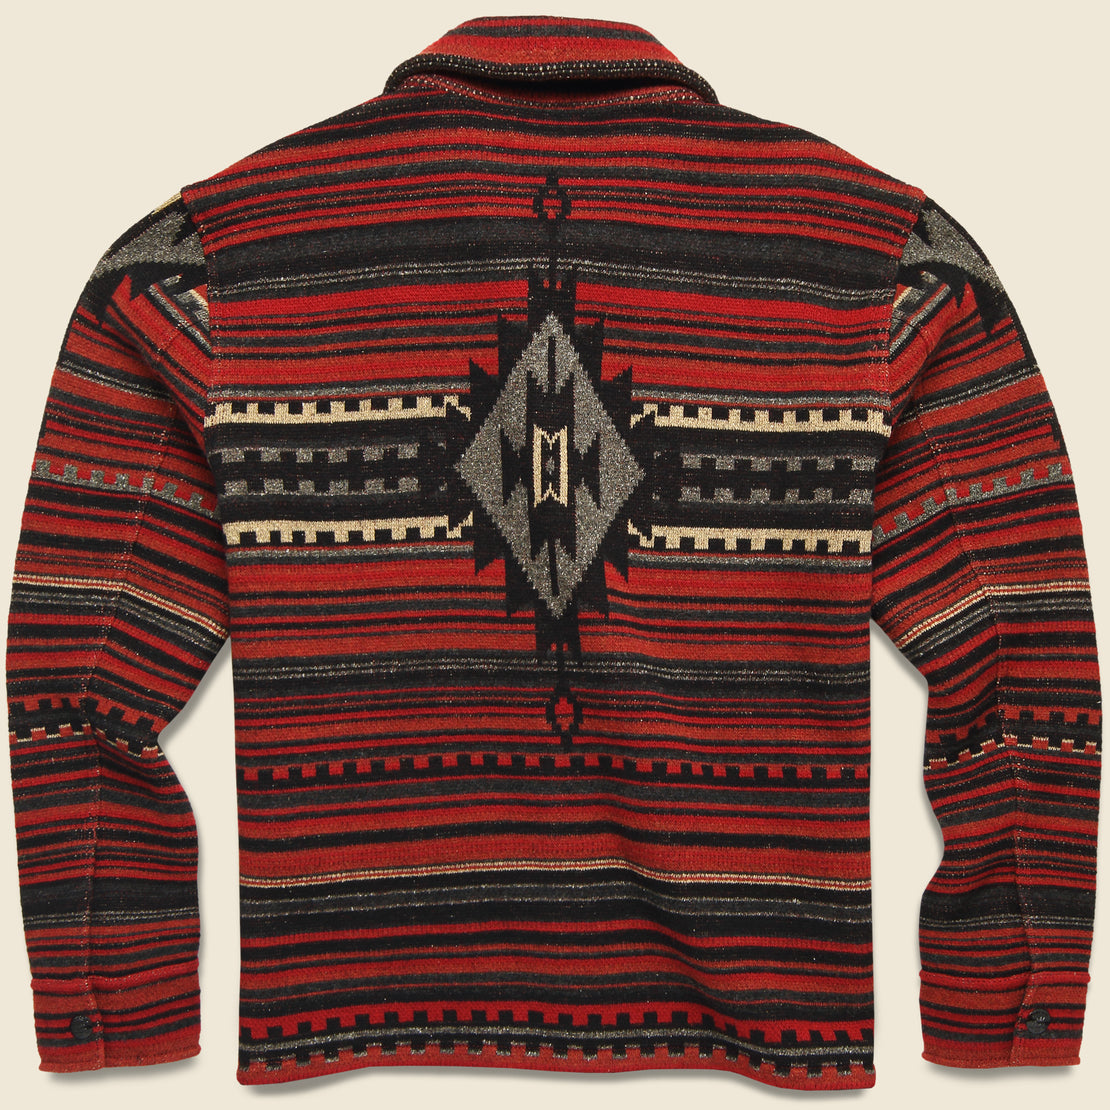 Wool-Blend Jacquard Workshirt Sweater - Red/Black